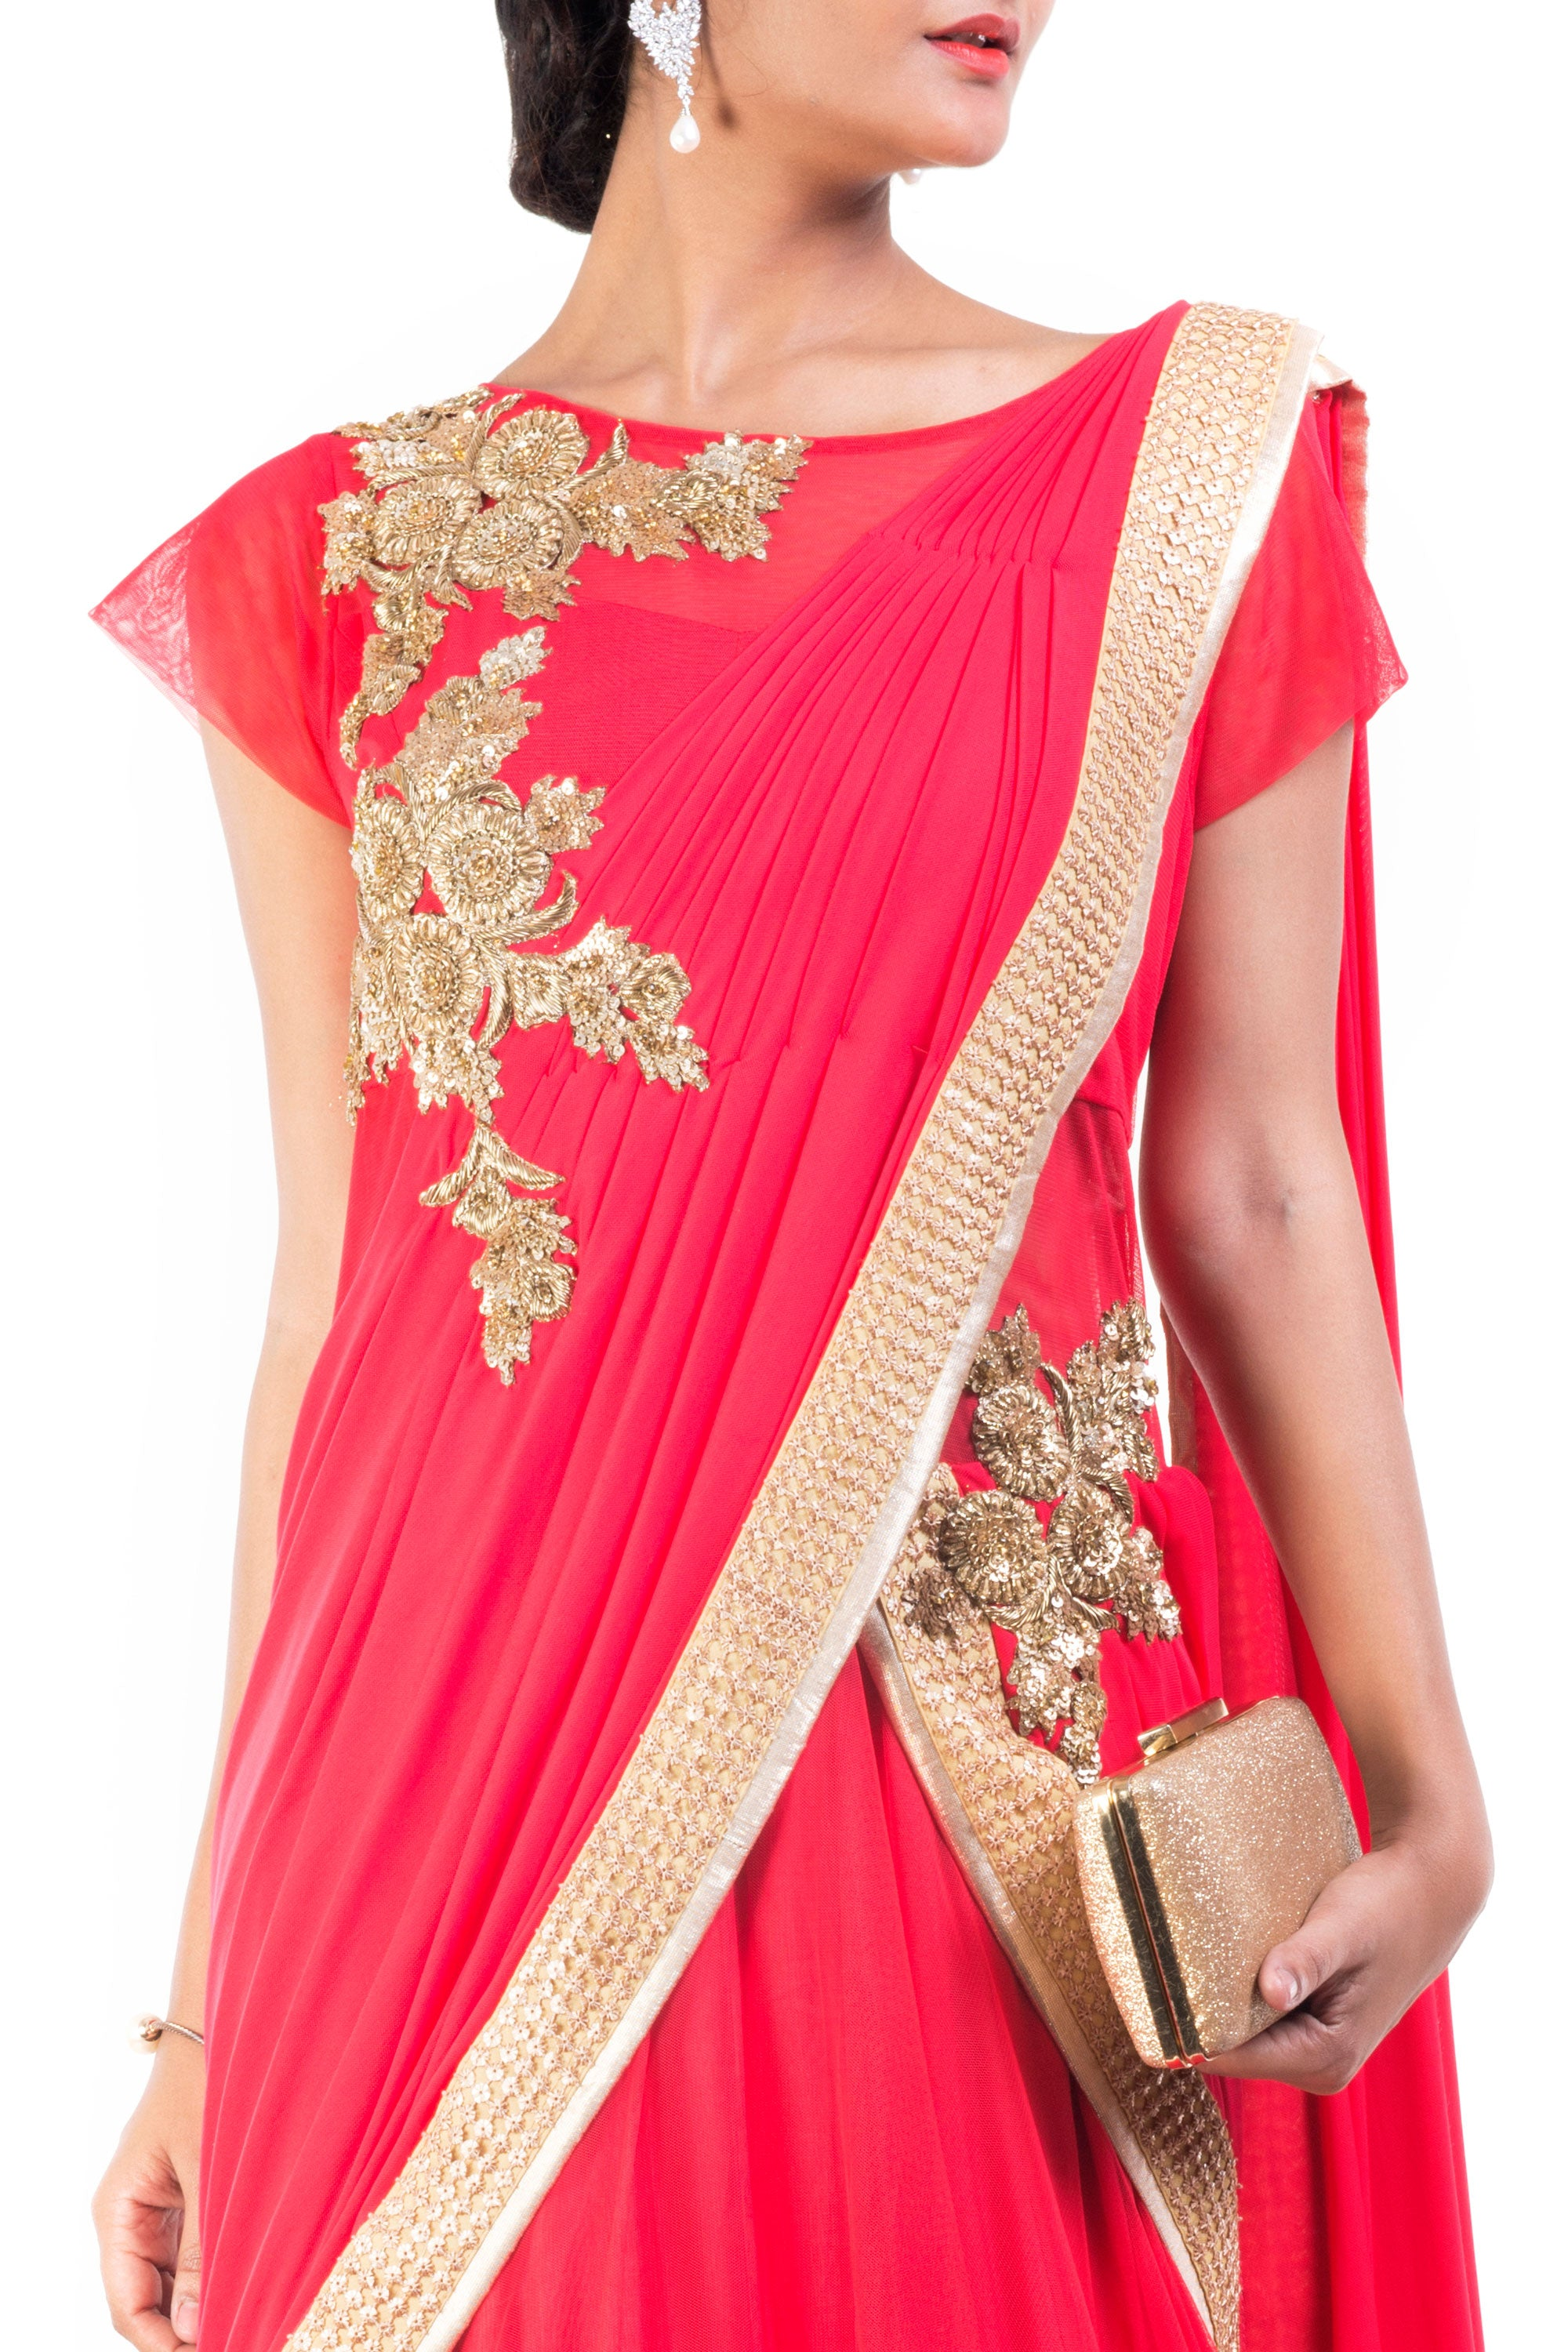 Tomato Coloured Gown Saree Closeup